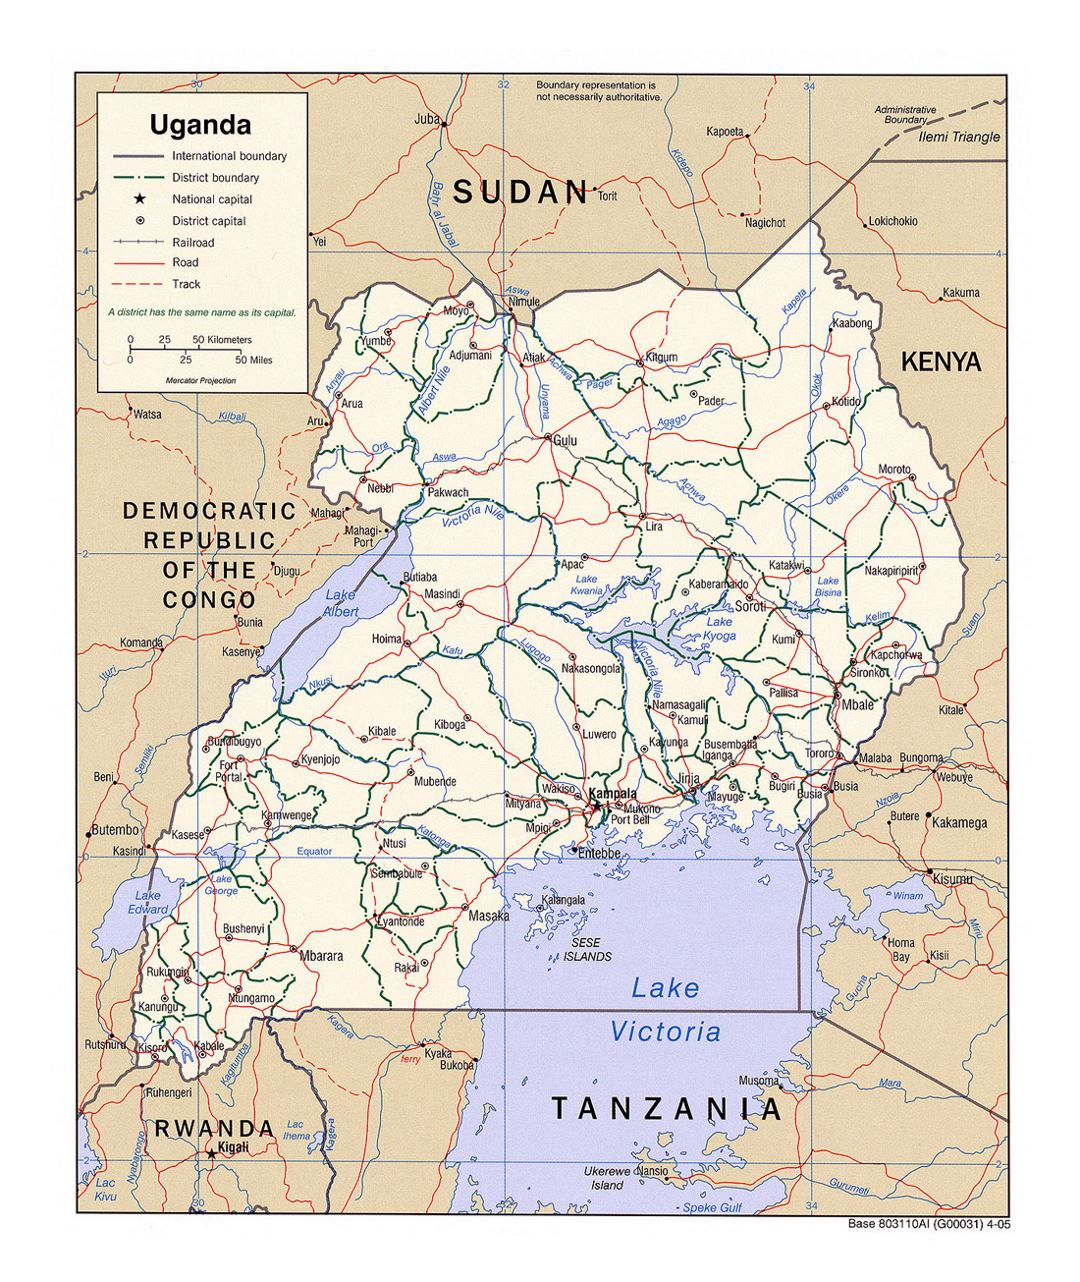 Detailed political and administrative map of Uganda with roads, railroads and major cities - 2005